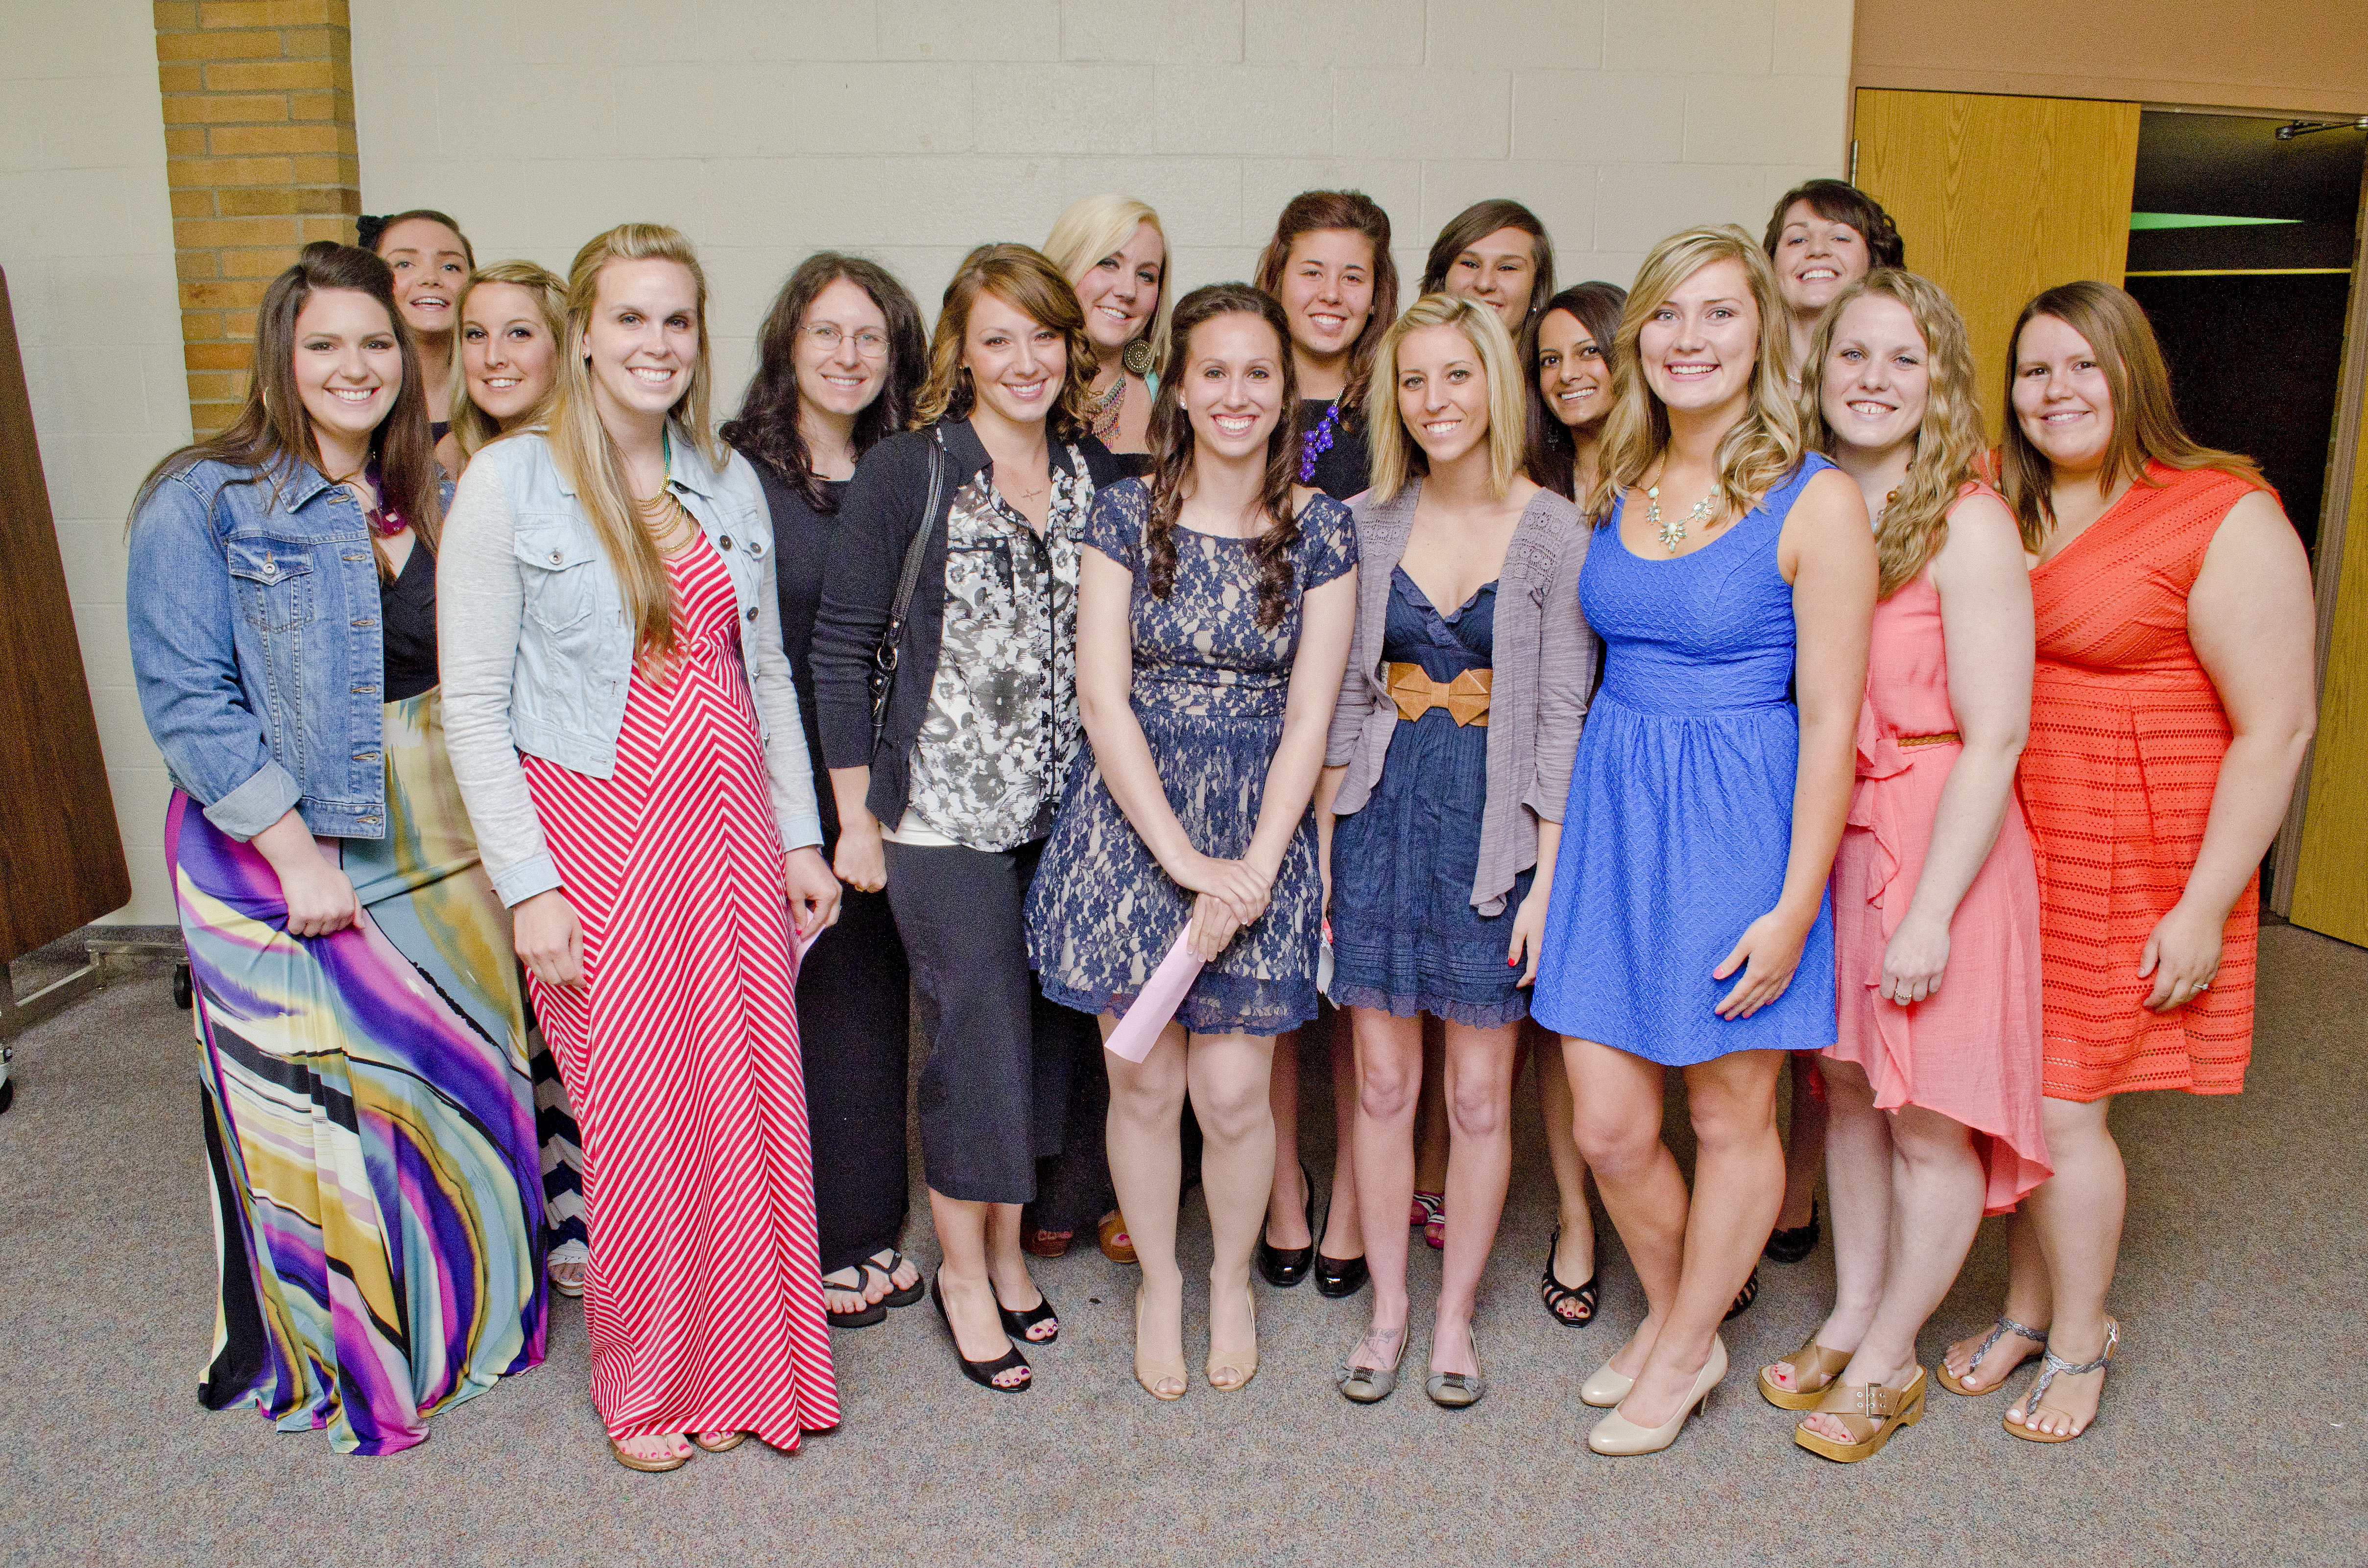 KCC's Dental Hygiene Class of 2014 poses together before their Pinning Ceremony.